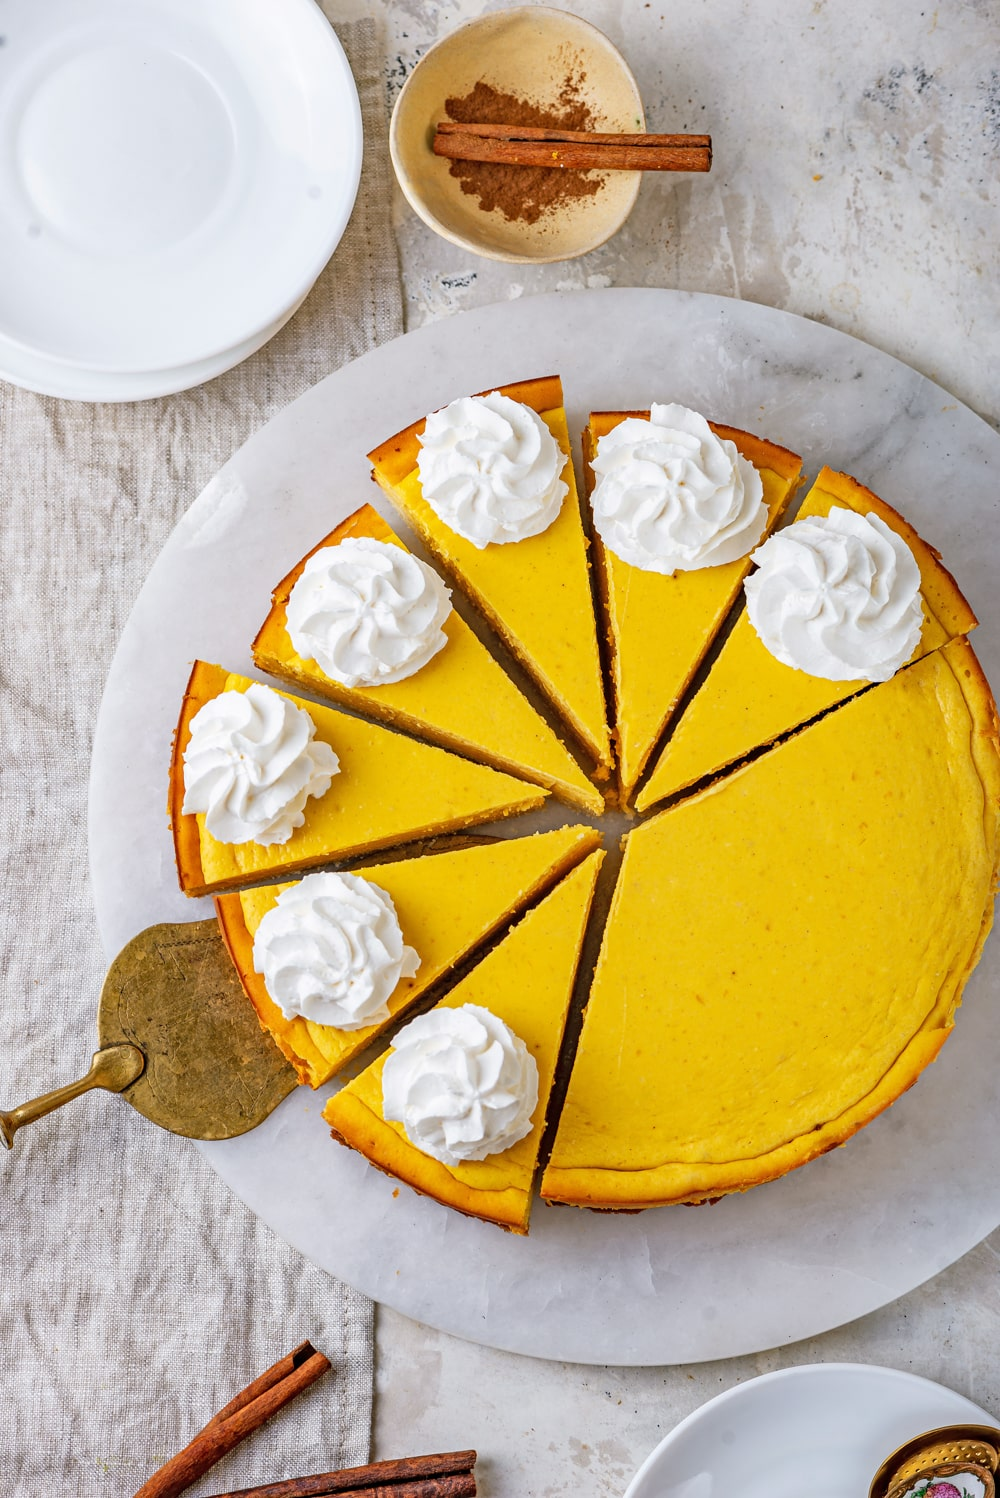 Pumpkin cheesecake cut into slices with a gold serving utensil under one of the slices.